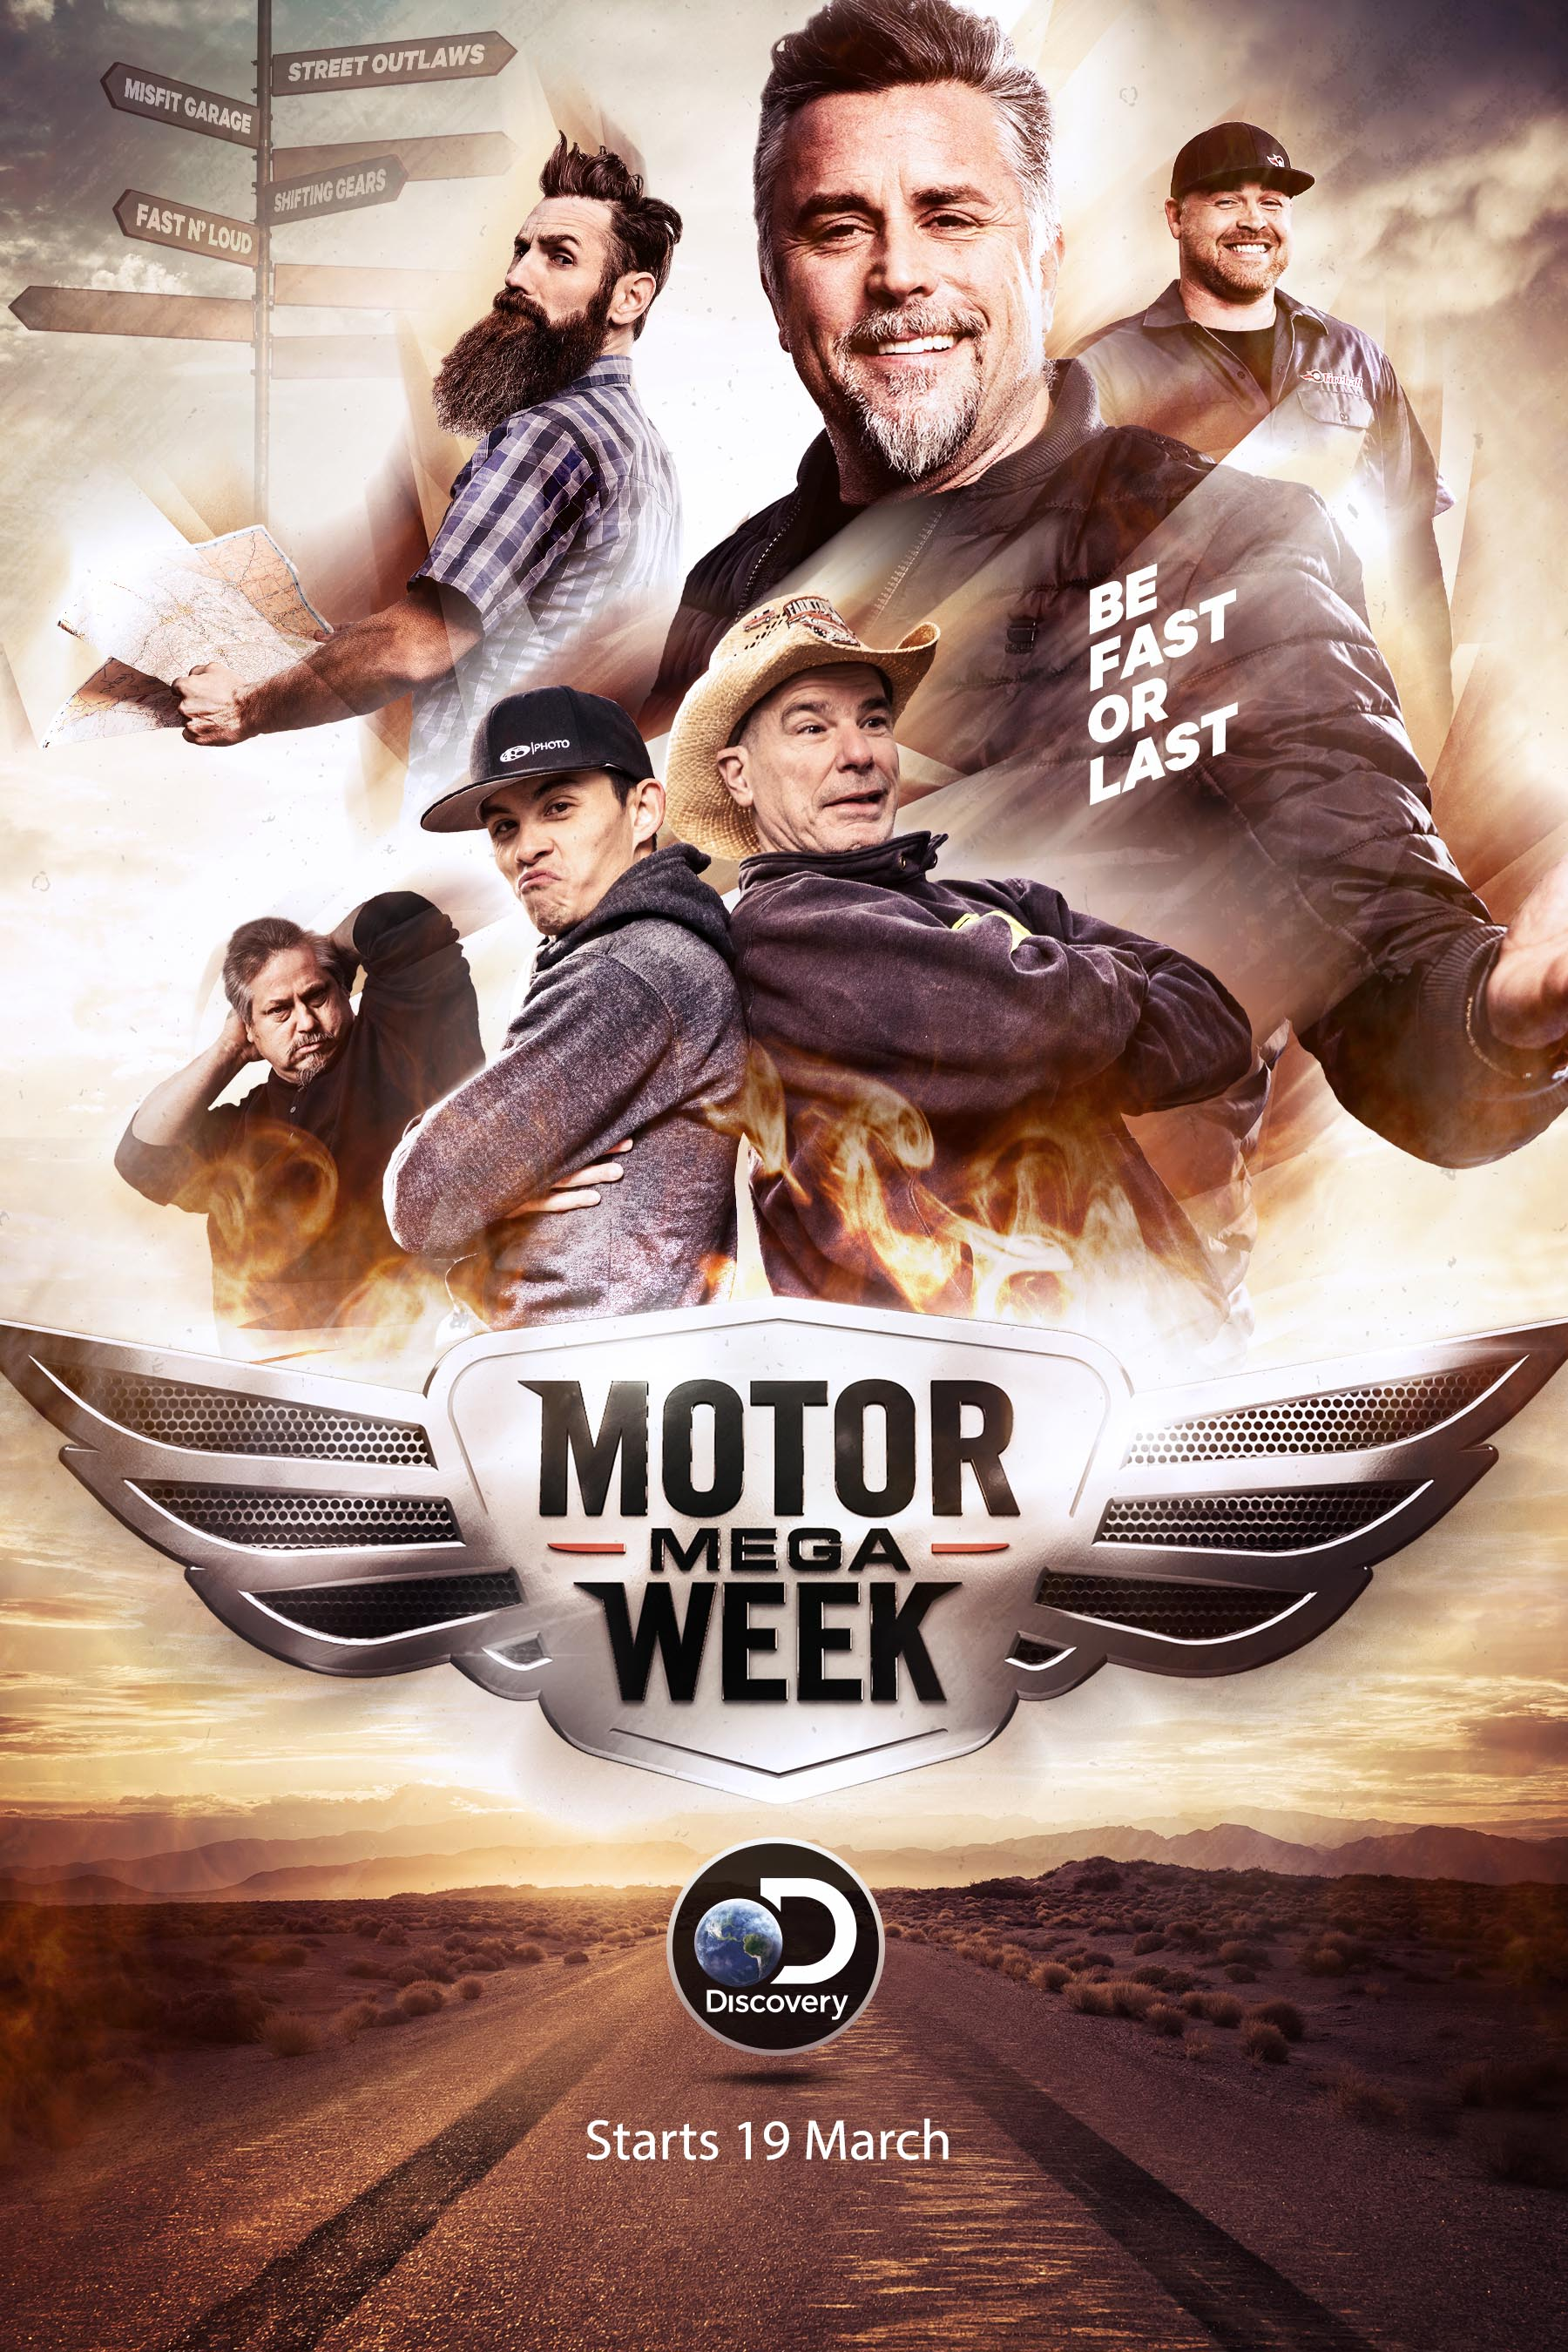 Discovery goes full throttle for Motor Mega Week starting 19 March